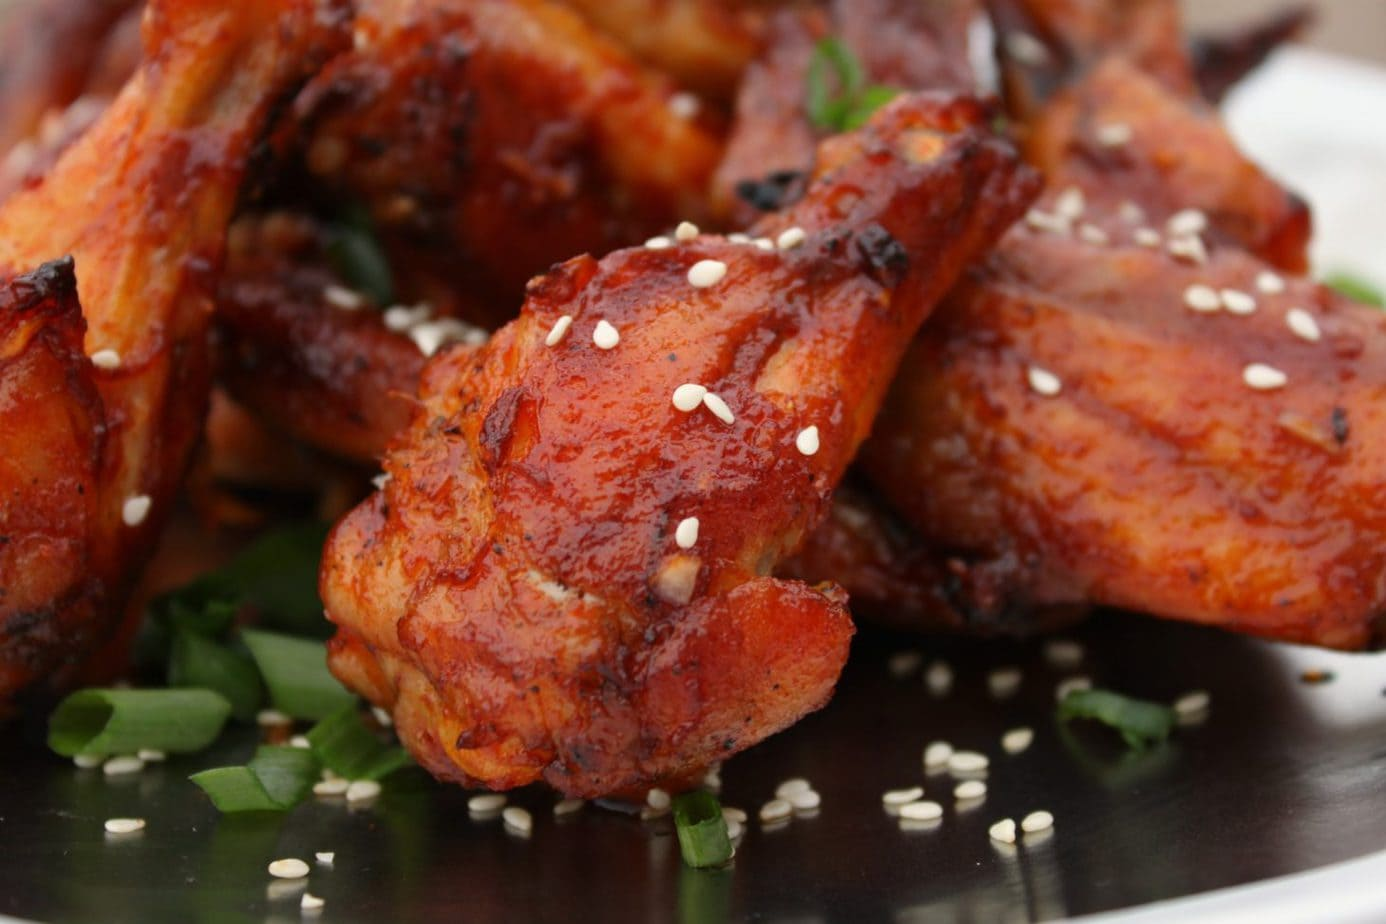 These Maple Gochujang Wings here to improve your day, your weekend, and yes...your superbowl party. Sweet and Spicy with just the right amount of sticky, they are super addictive. Betcha can't just eat one! #wings #chickenwings #gochujang #maplesyrup